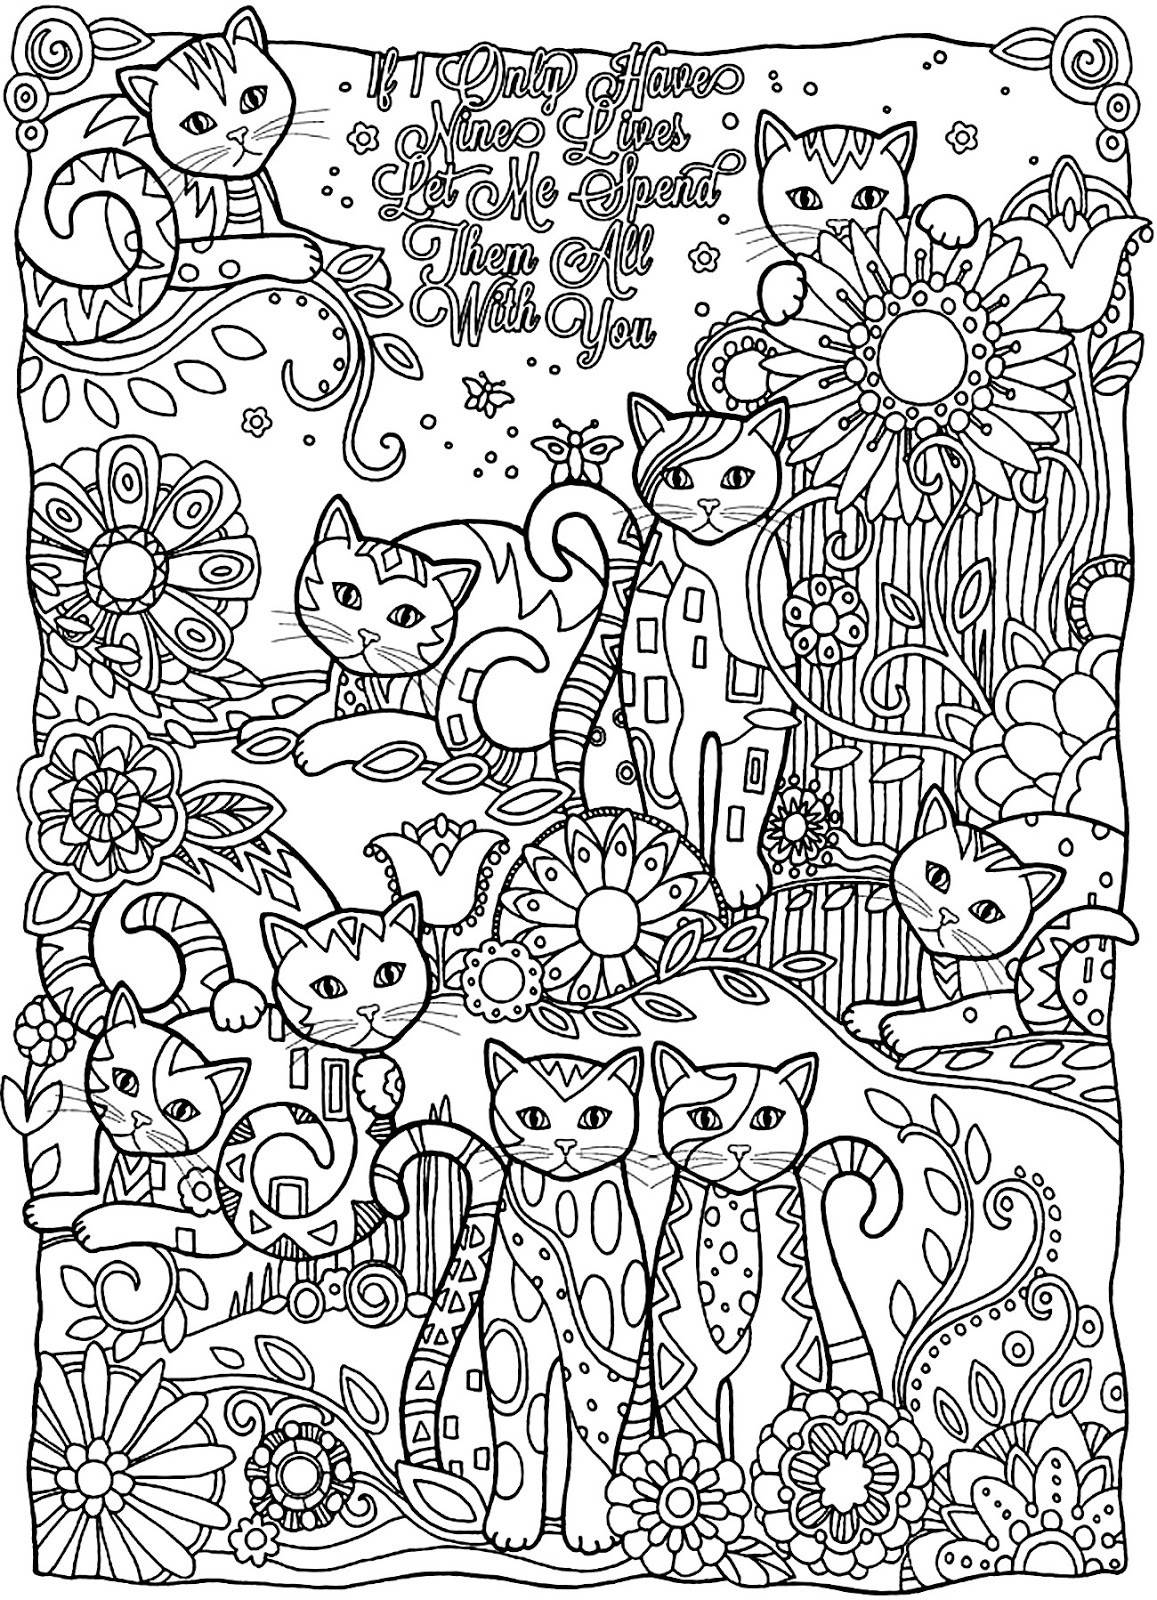 Best ideas about Cats Adult Coloring Books . Save or Pin Coloring Page World If I ly Have Nine Lives Let Me Now.